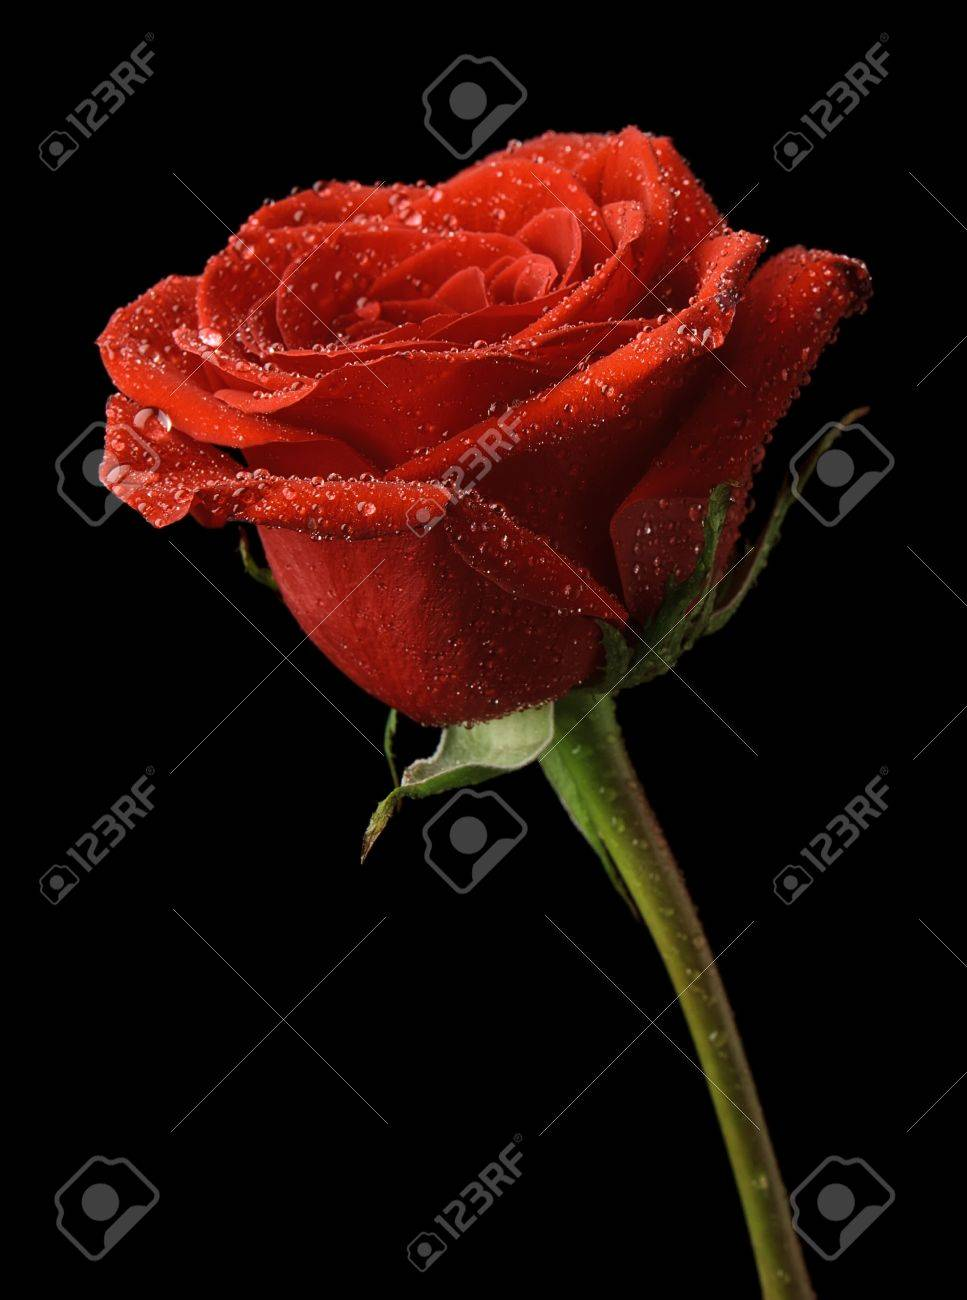 Red Rose In Dew Drops On A Black Background Stock Photo Picture And Royalty Free Image Image 18943848